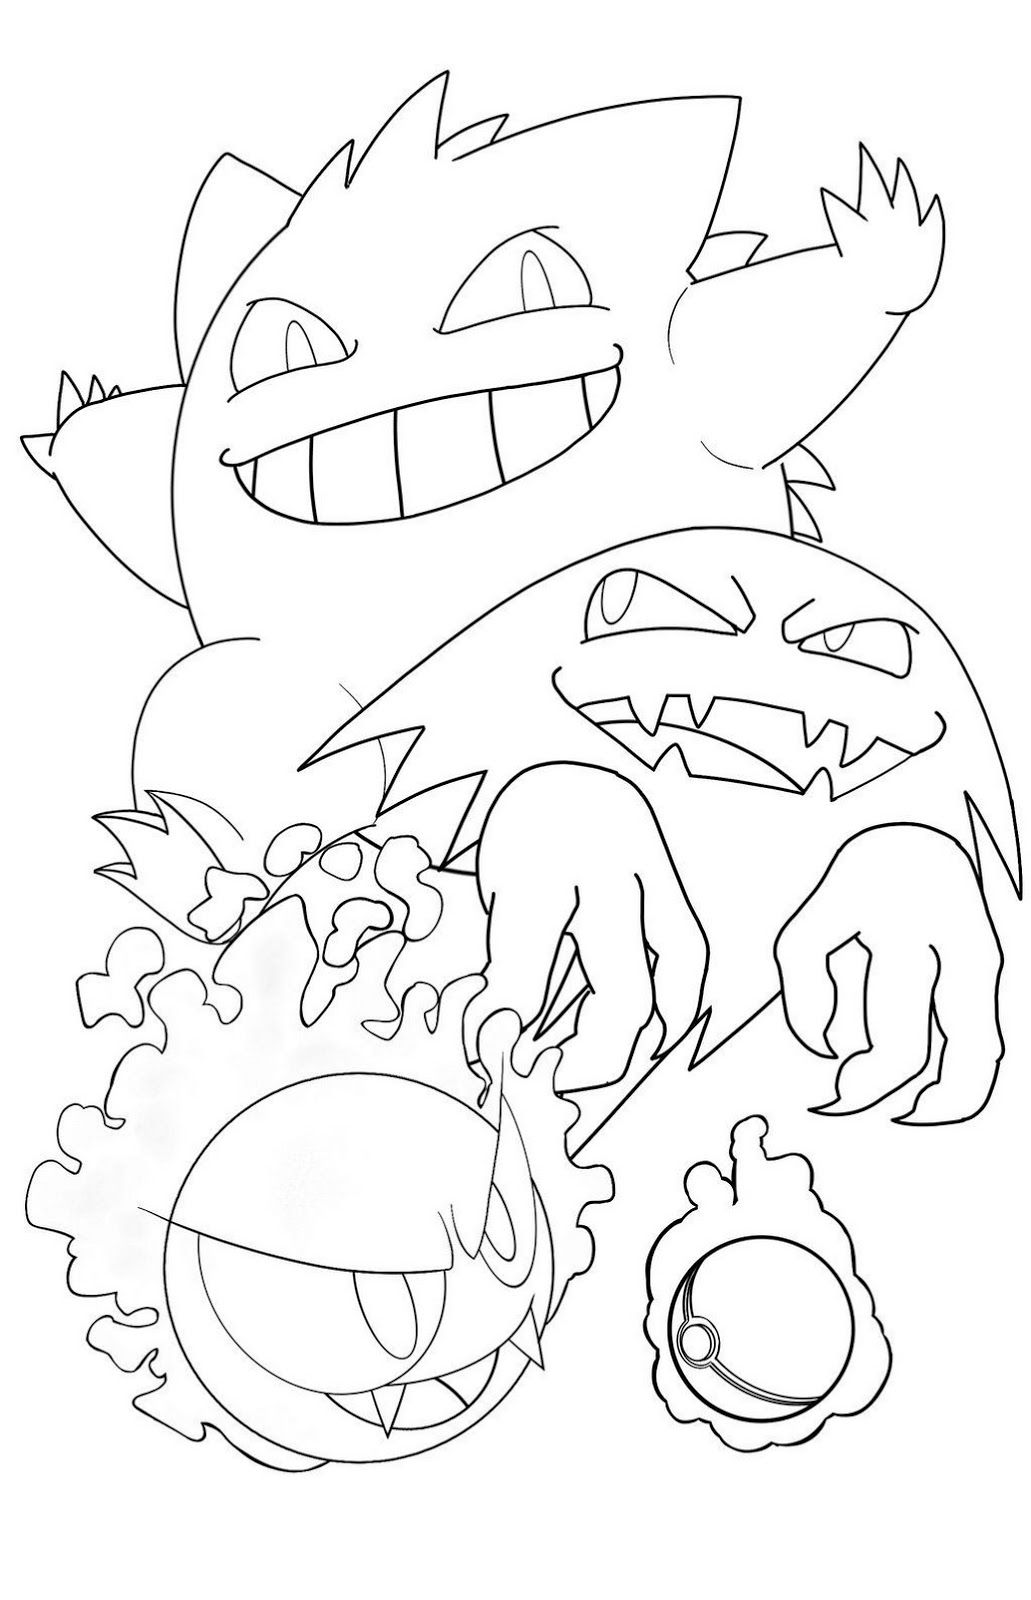 Pokemon Gastly Haunter And Gengar Coloring Pages Pokemon Coloring Pokemon Coloring Pages Pokemon Tattoo